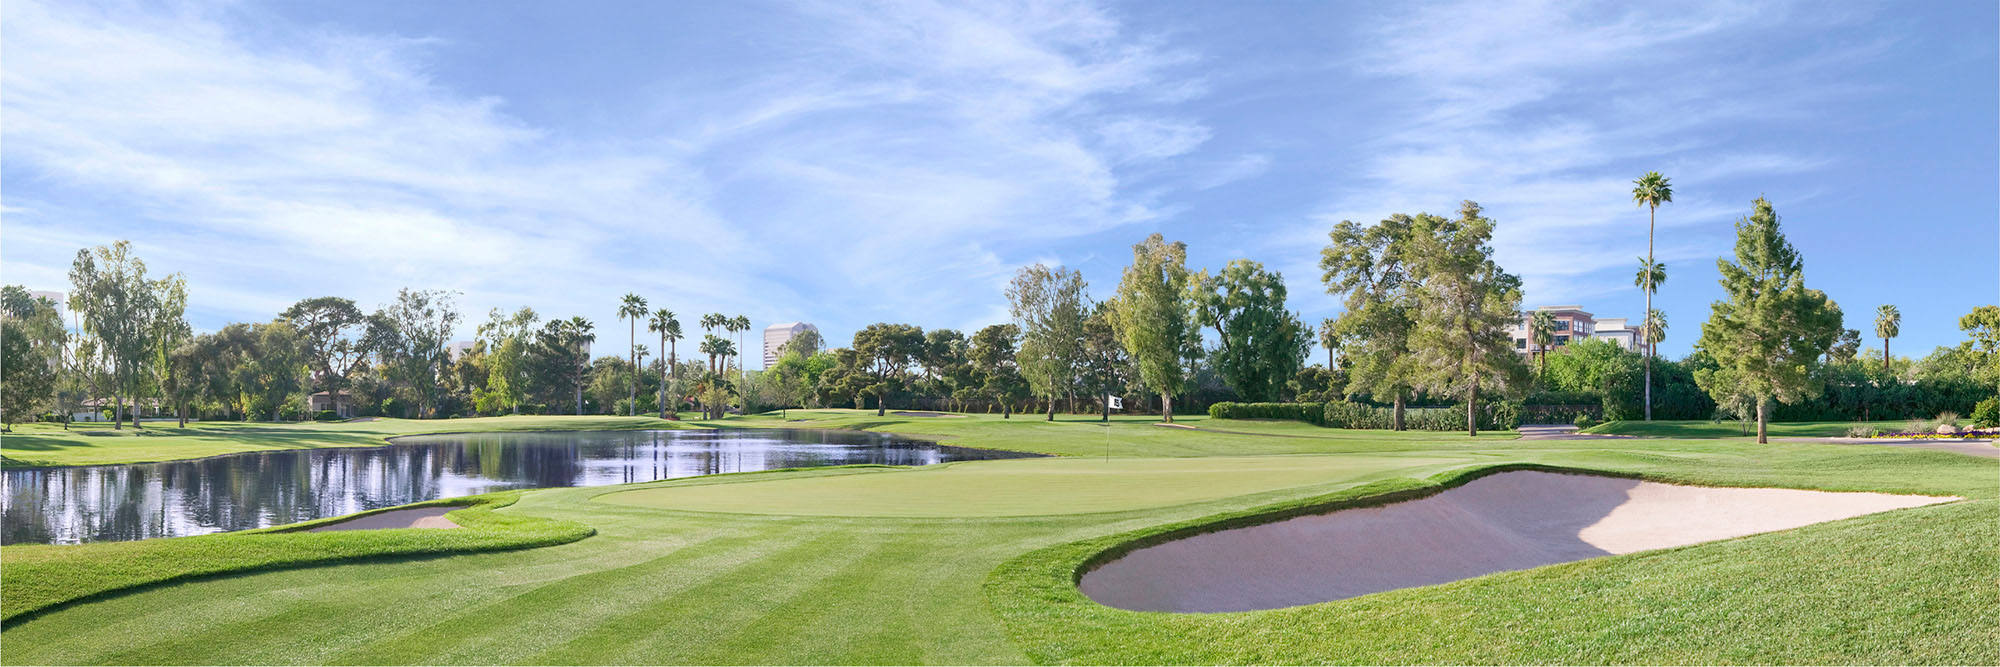 Golf Course Image - Phoenix Country Club No. 15